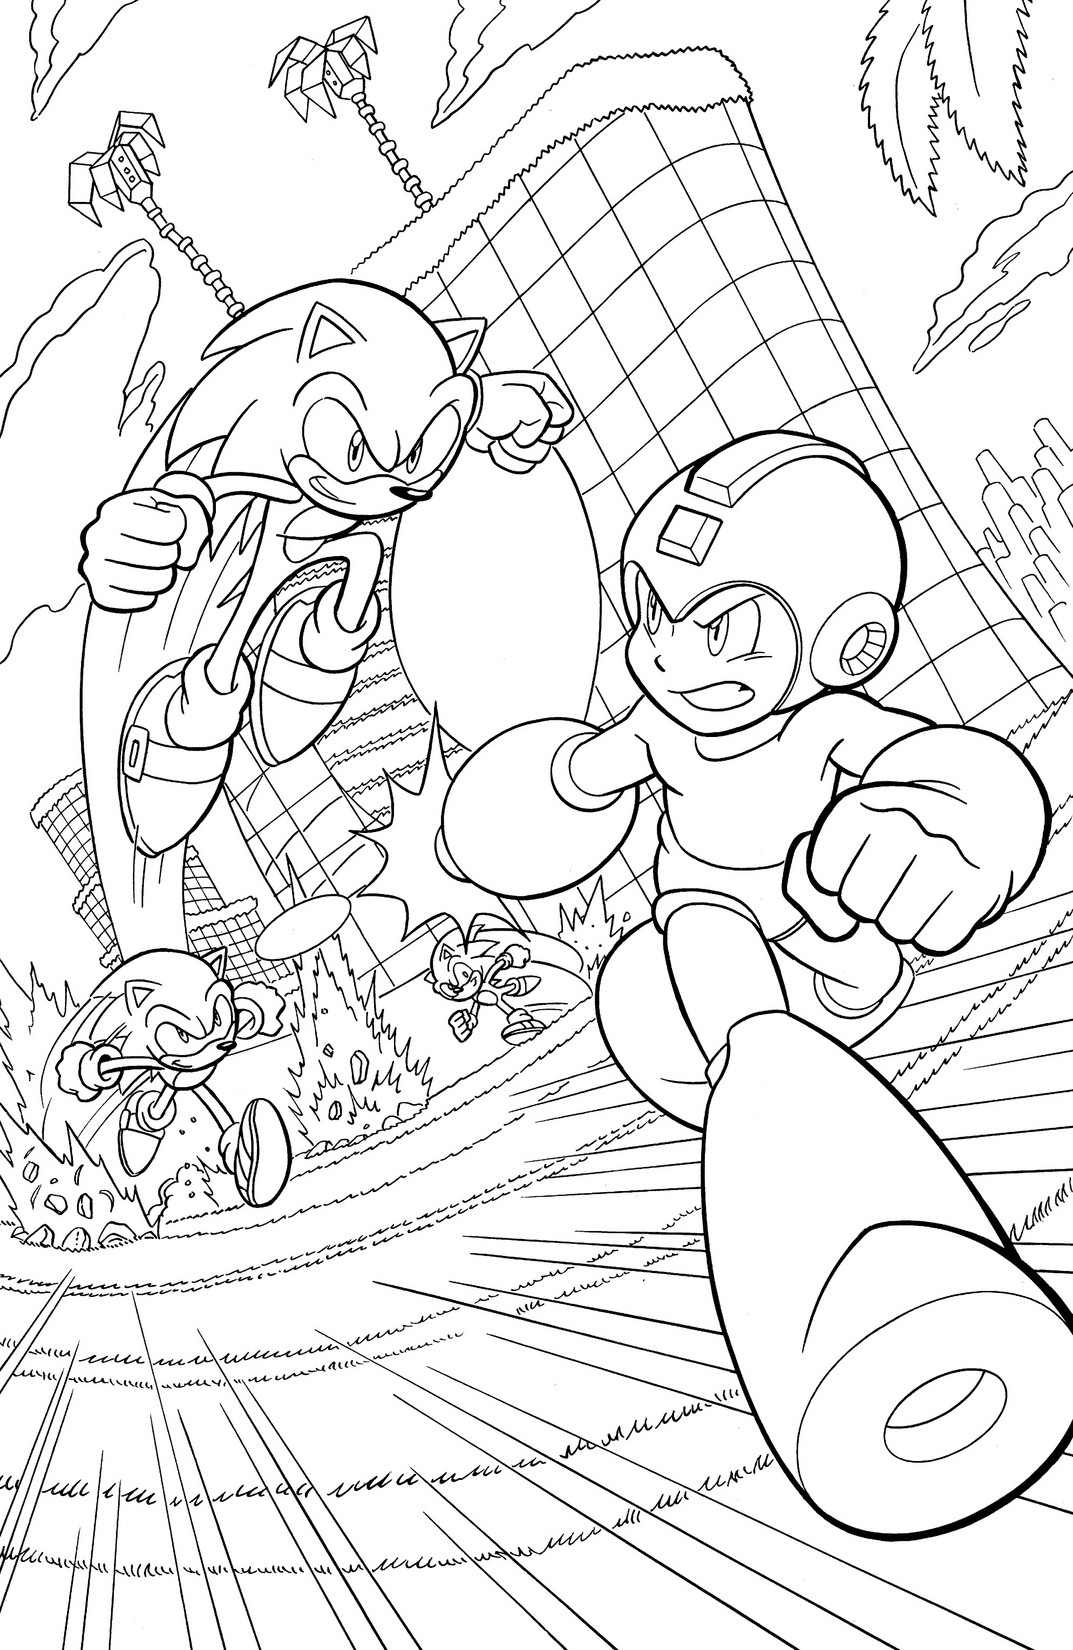 get a free preview of mega man  24  worlds collide   u2013 the